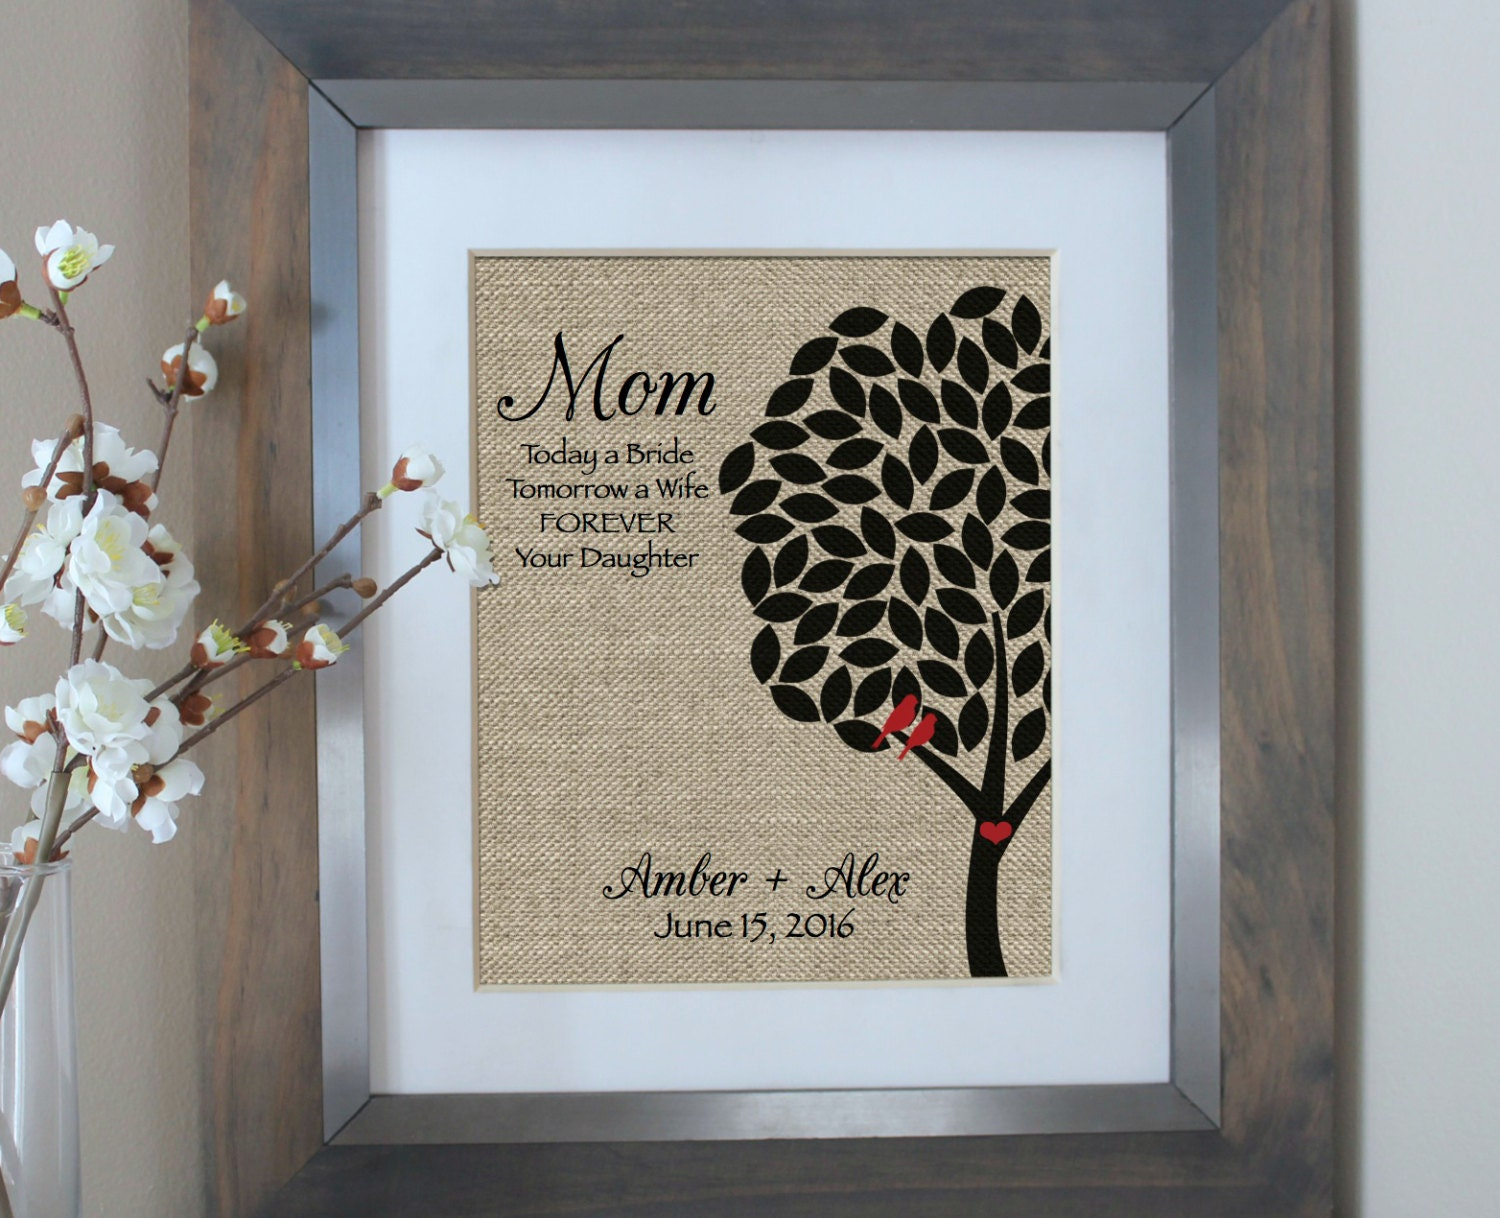 Gifts For Parents Wedding Thank You: Wedding Gift For Parents Wedding Thank You Gift Mother Of